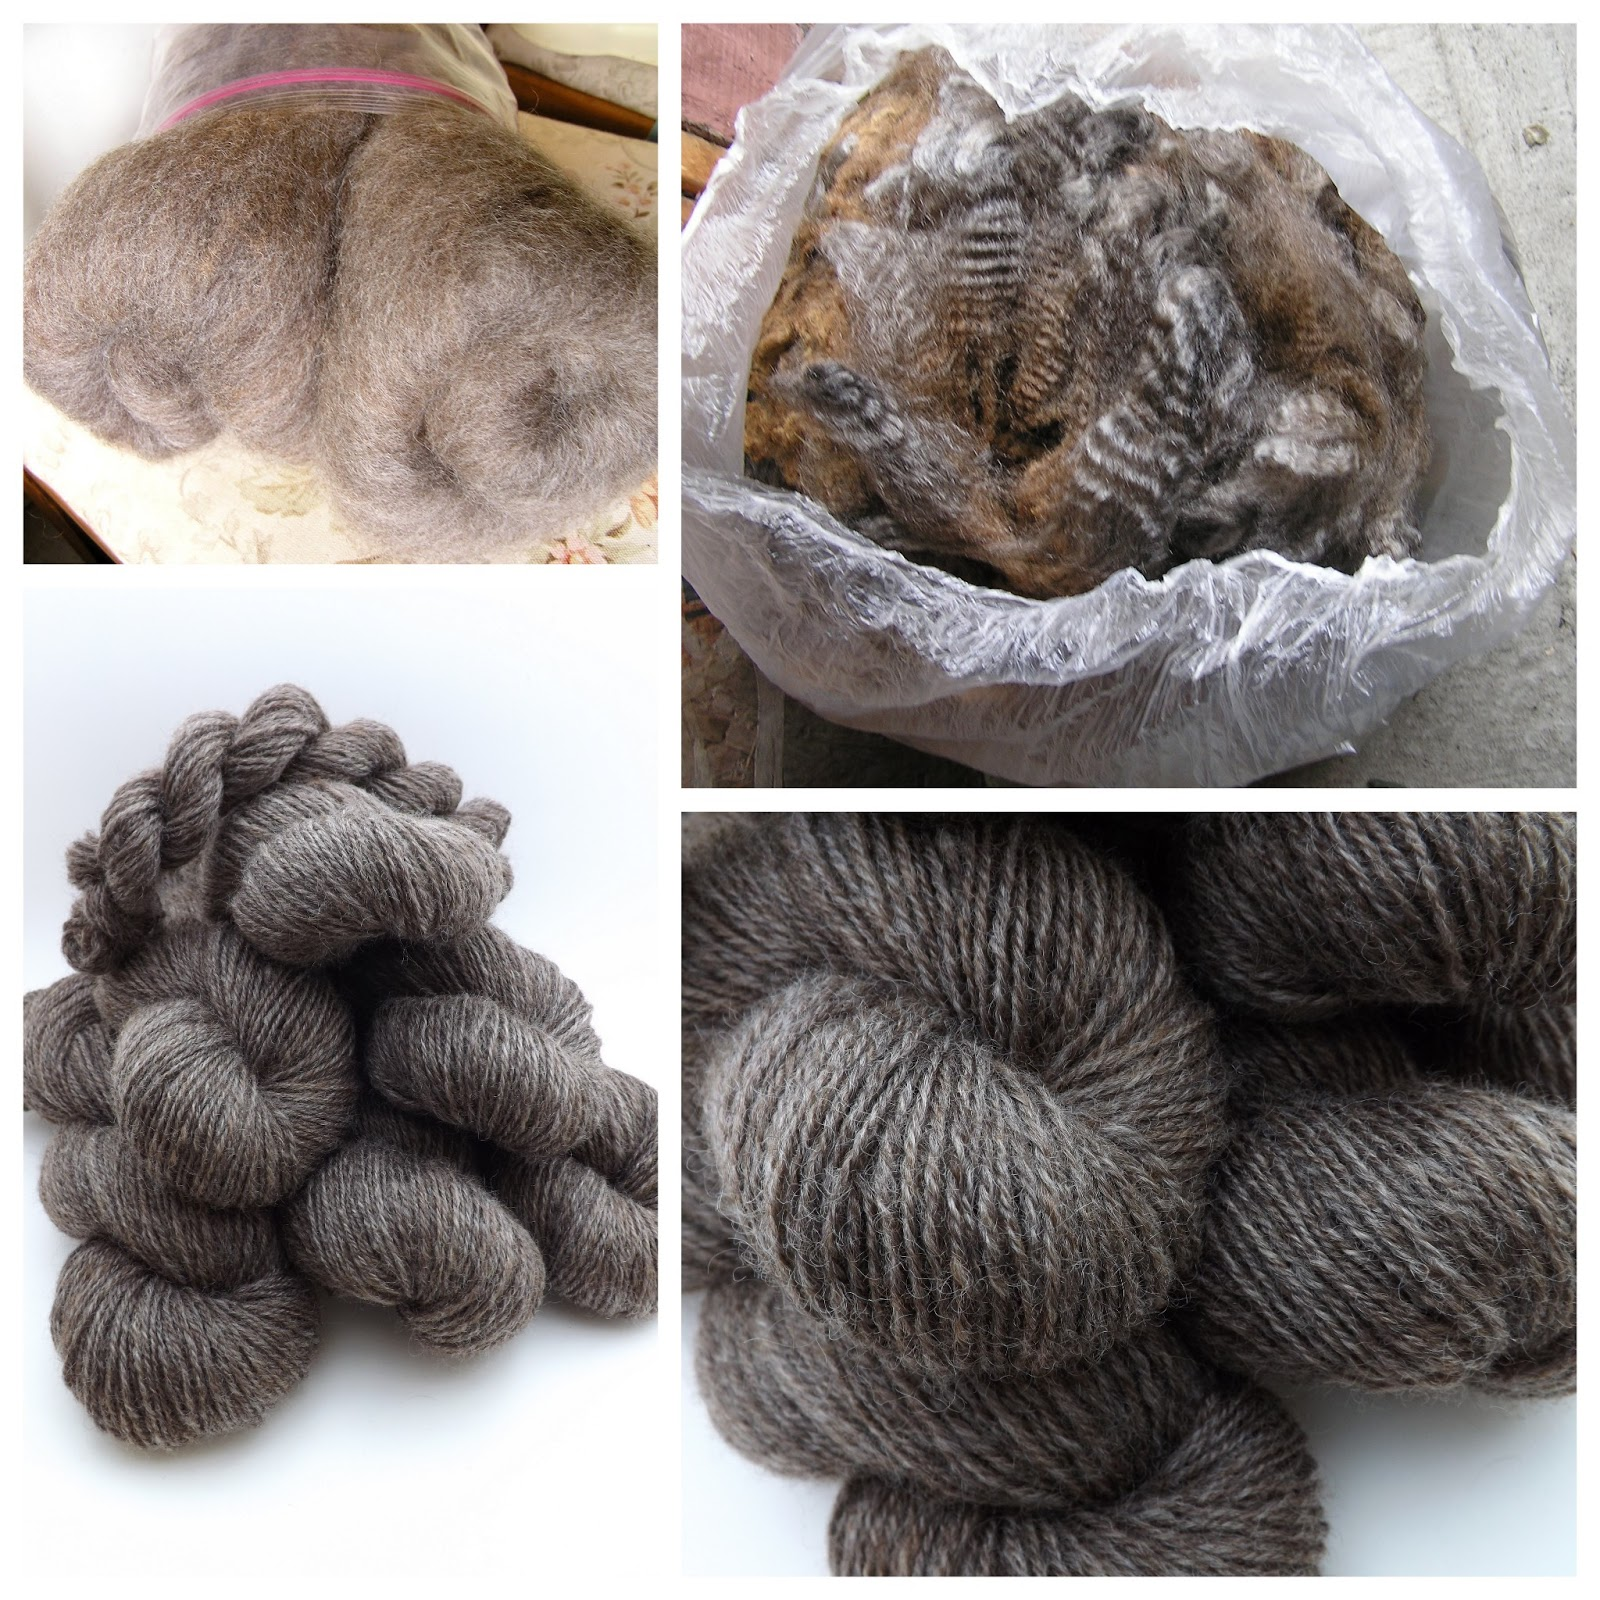 Knitting With Handspun : Everything old knitting with handspun is the most